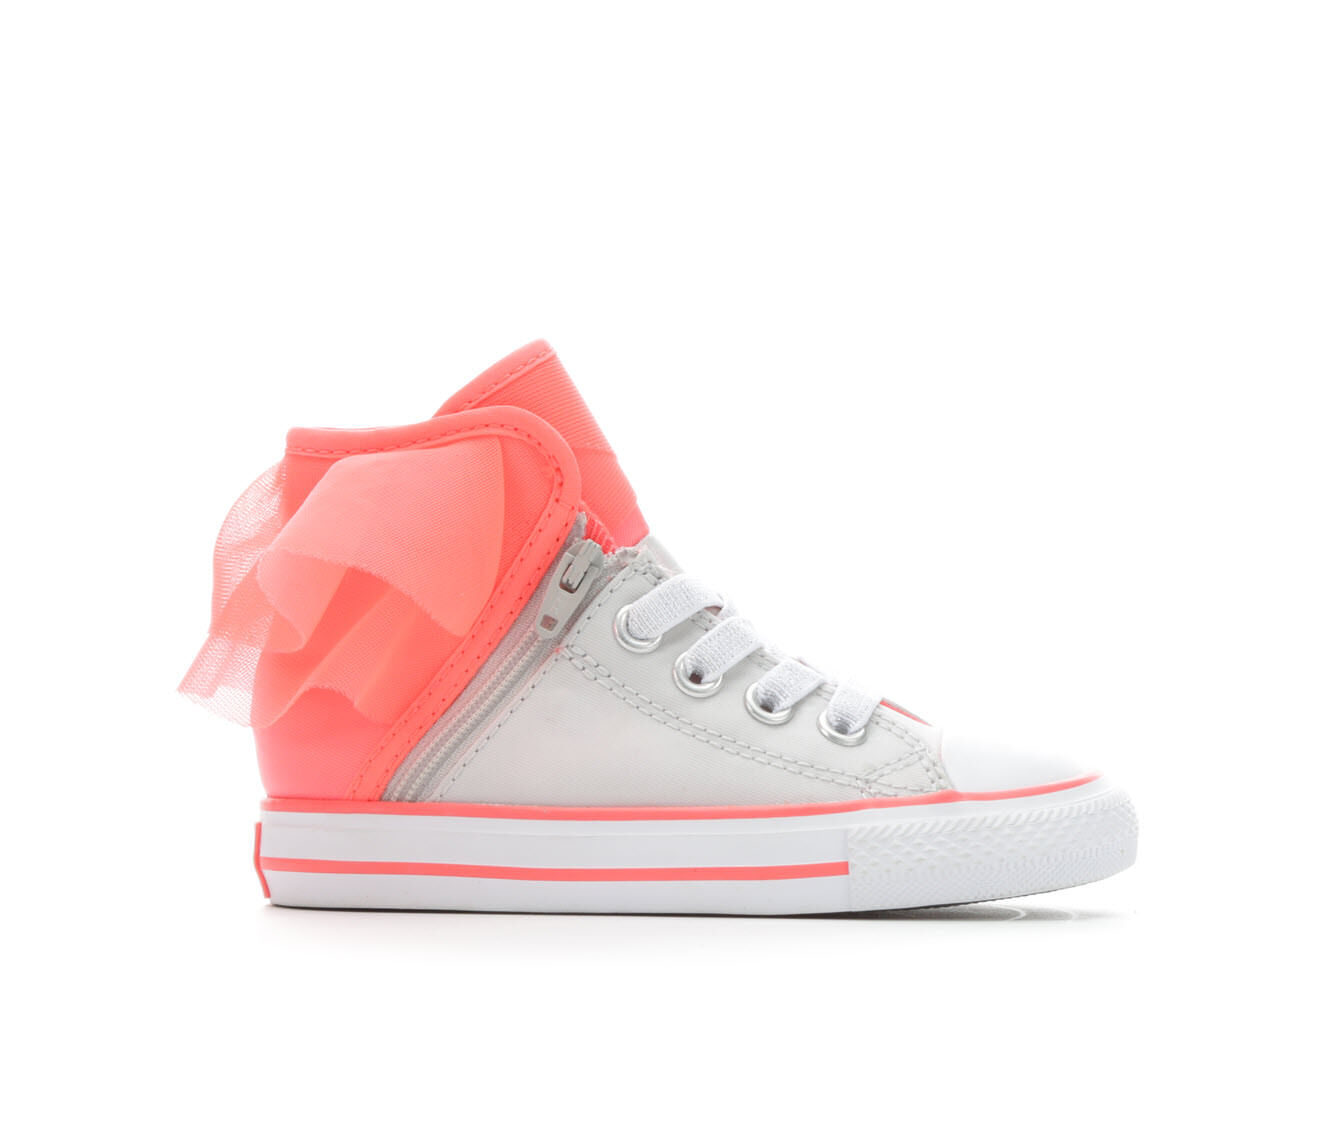 converse high tops sneakers for girls